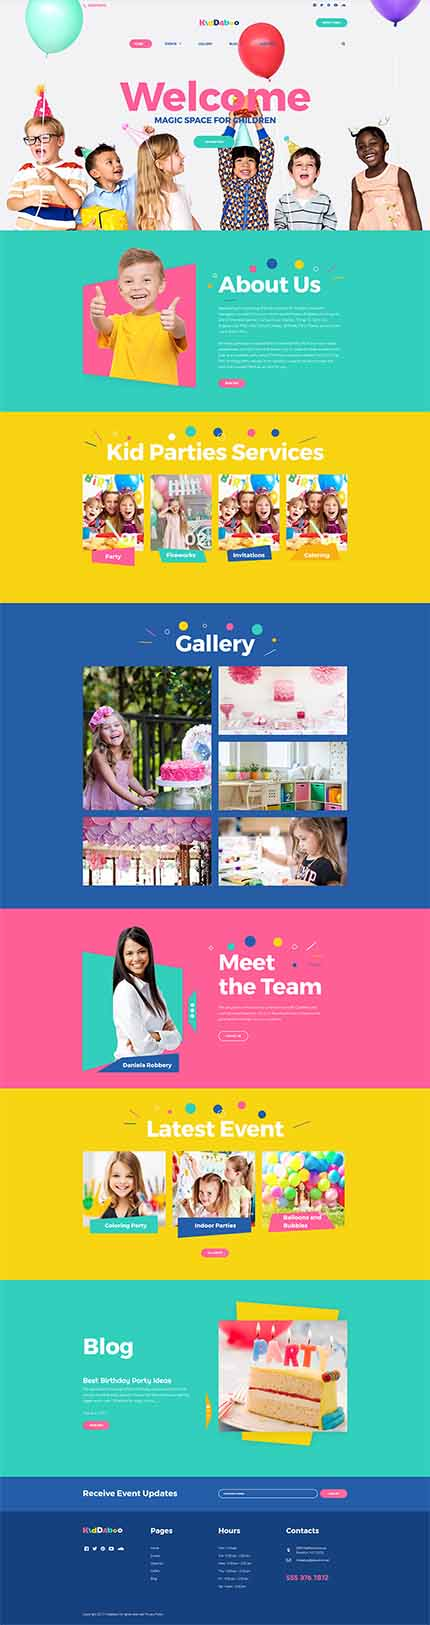 Family Most Popular website inspirations at your coffee break? Browse for more WordPress #templates! // Regular price: $69 // Sources available:.PHP, This theme is widgetized #Family #Most Popular #WordPress